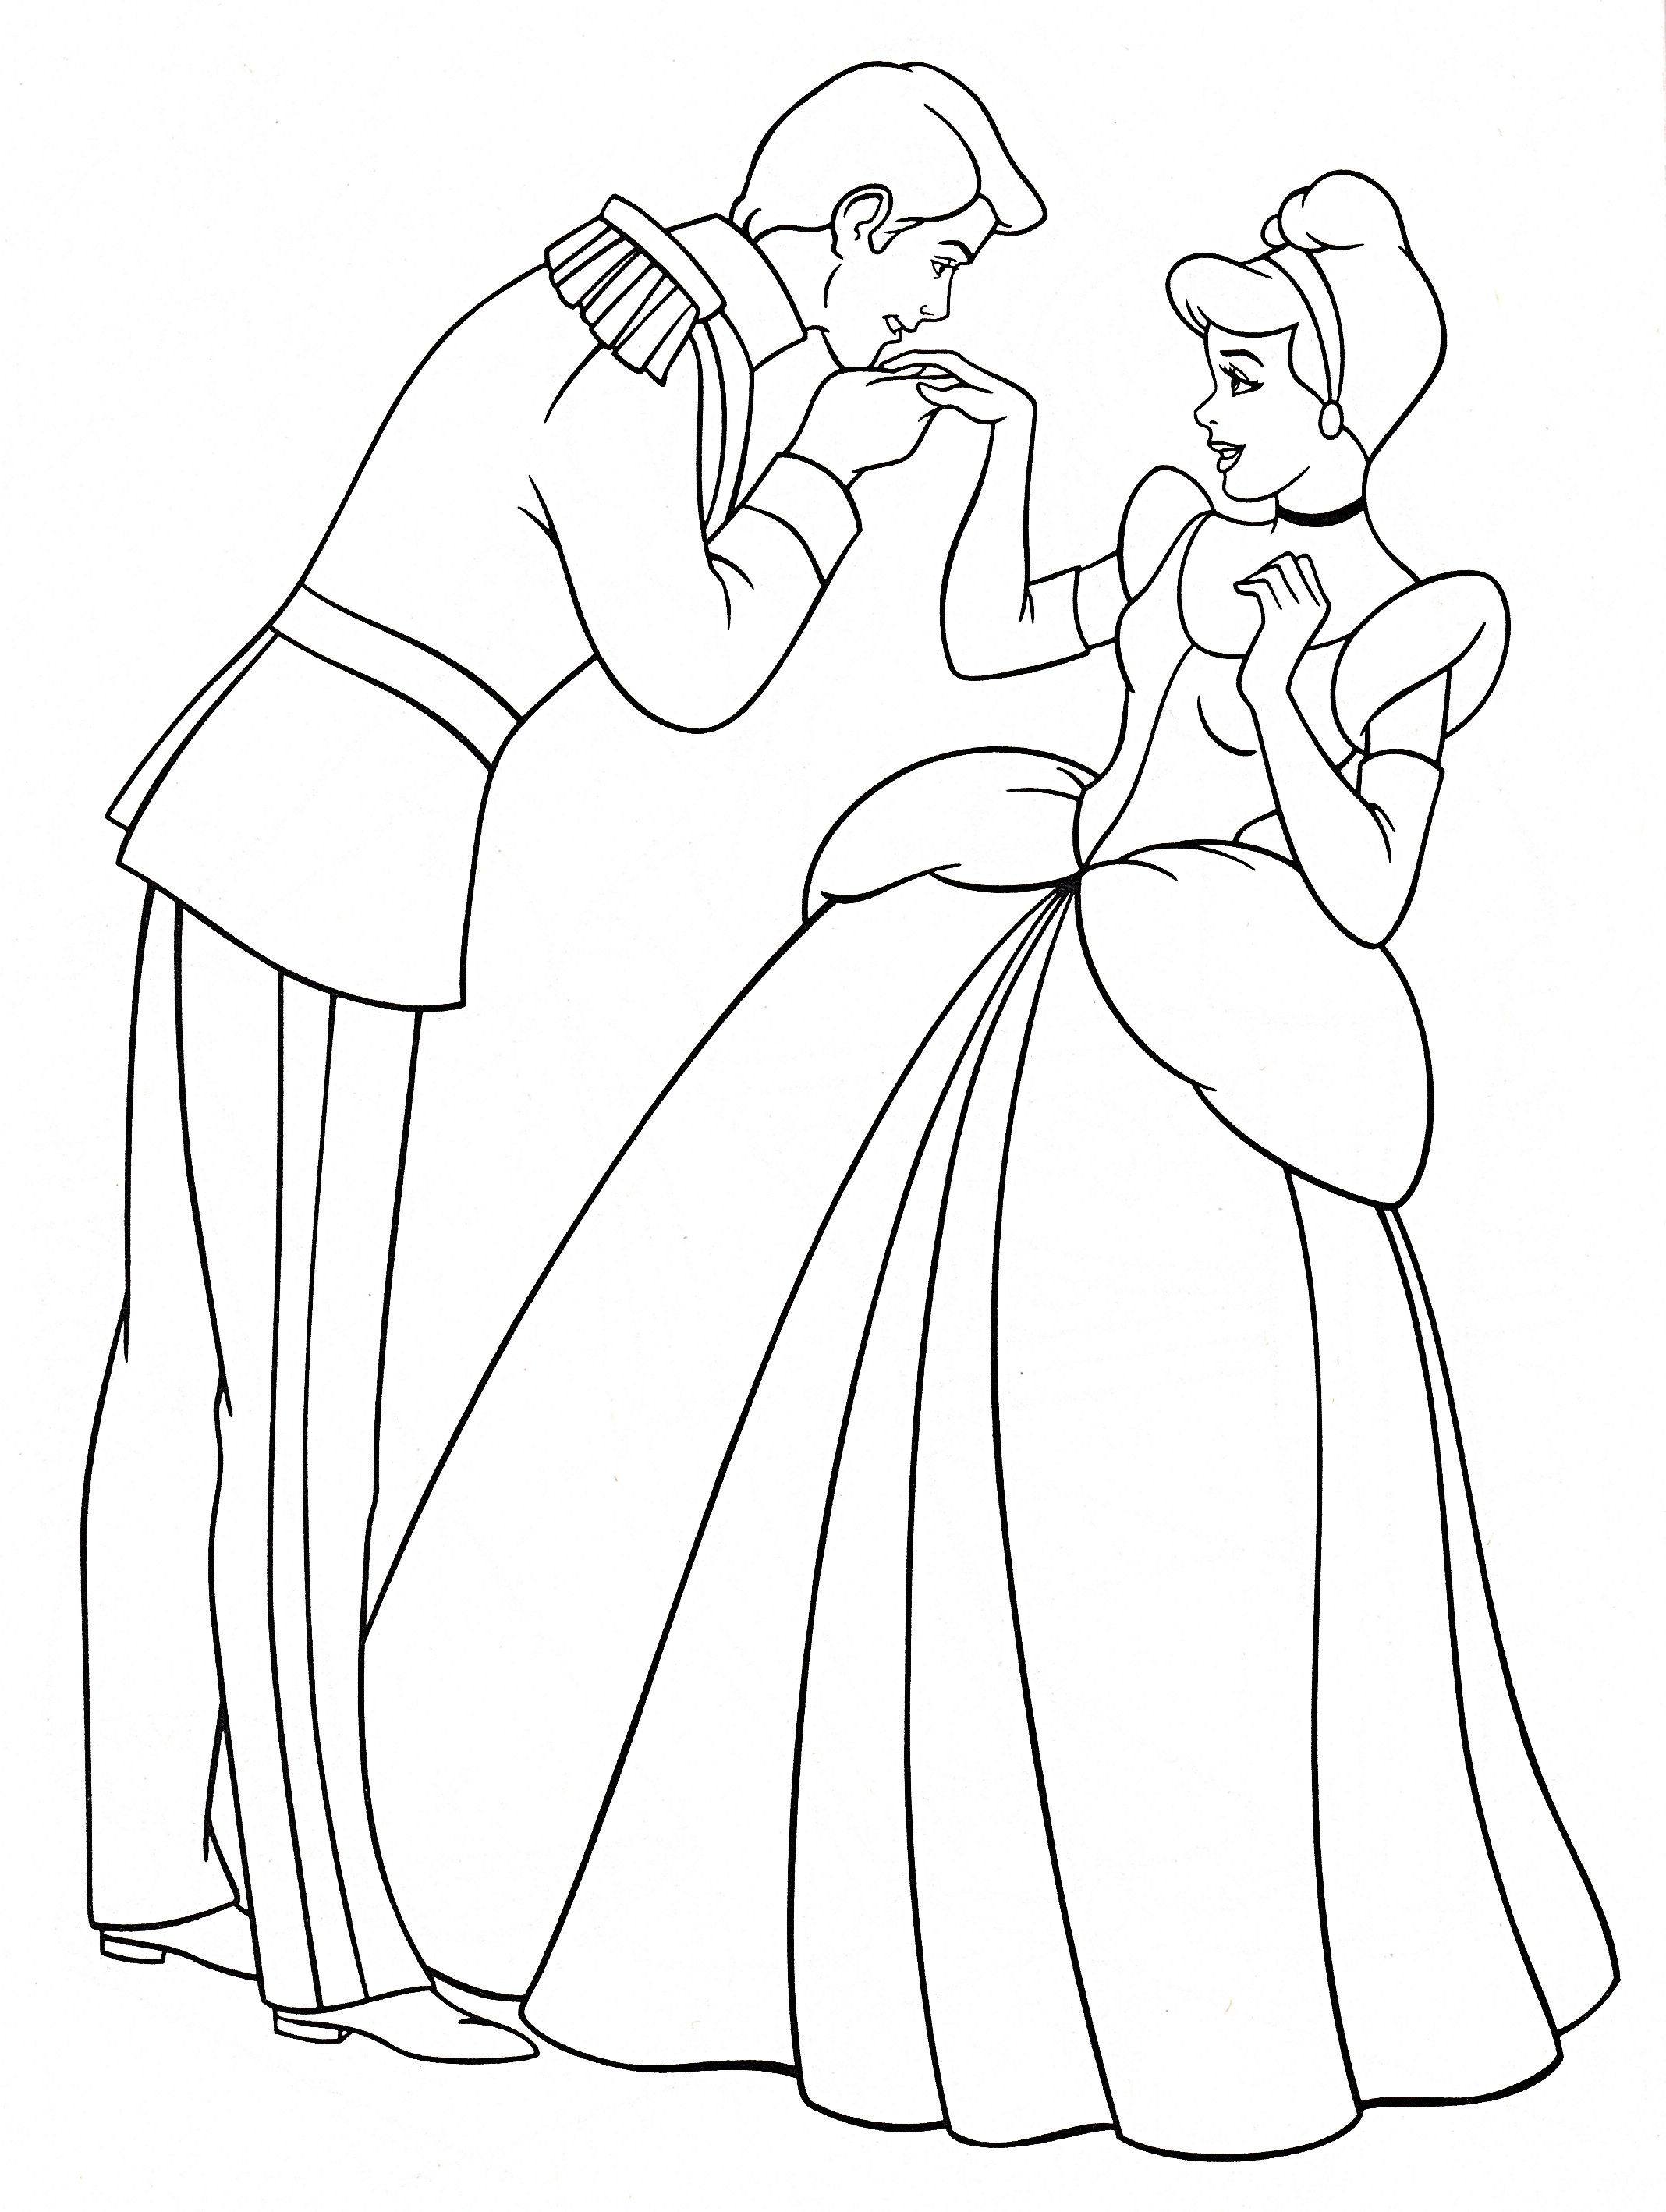 Prince And Princess Drawing at GetDrawings.com   Free for personal ...